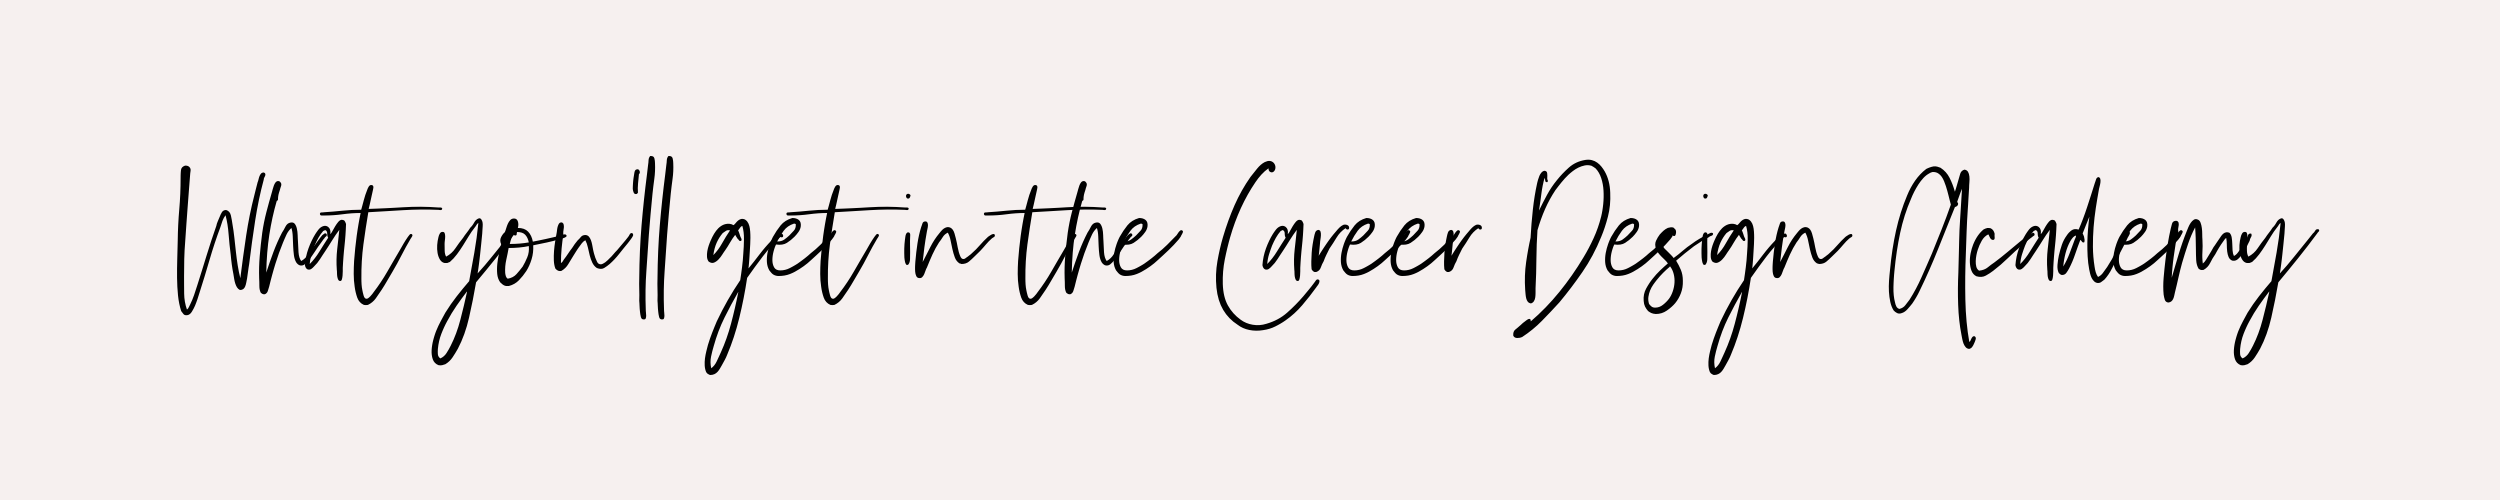 Welcome to the Career Design Academy (1).png